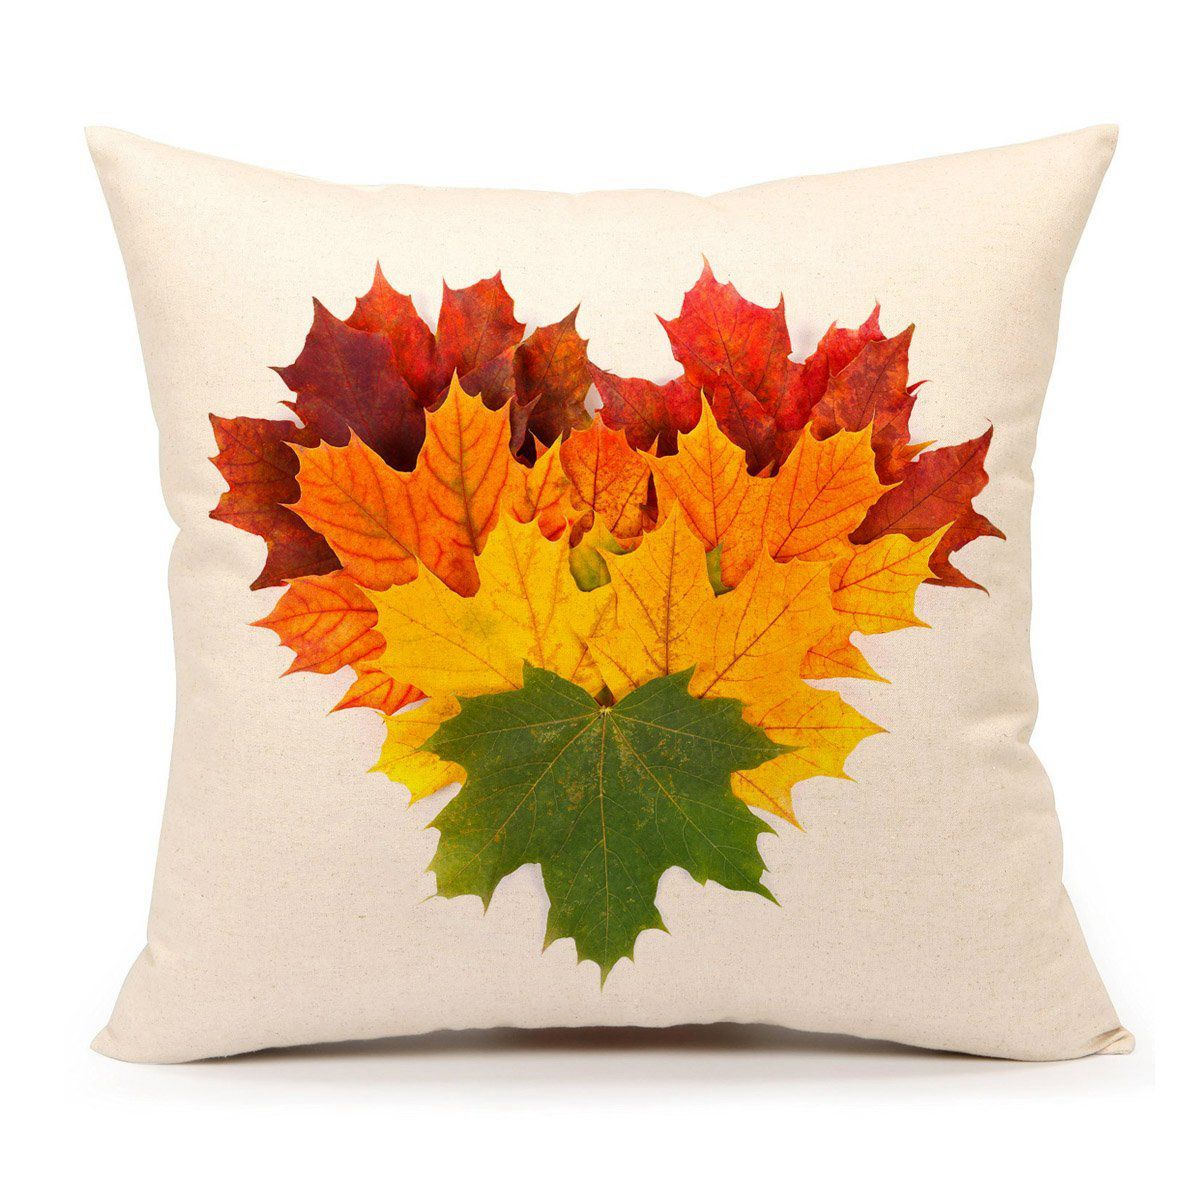 Autumn Leaves Fall Heart Home   Throw Pillow  Case 18 X 18 Inch Cotton Linen For